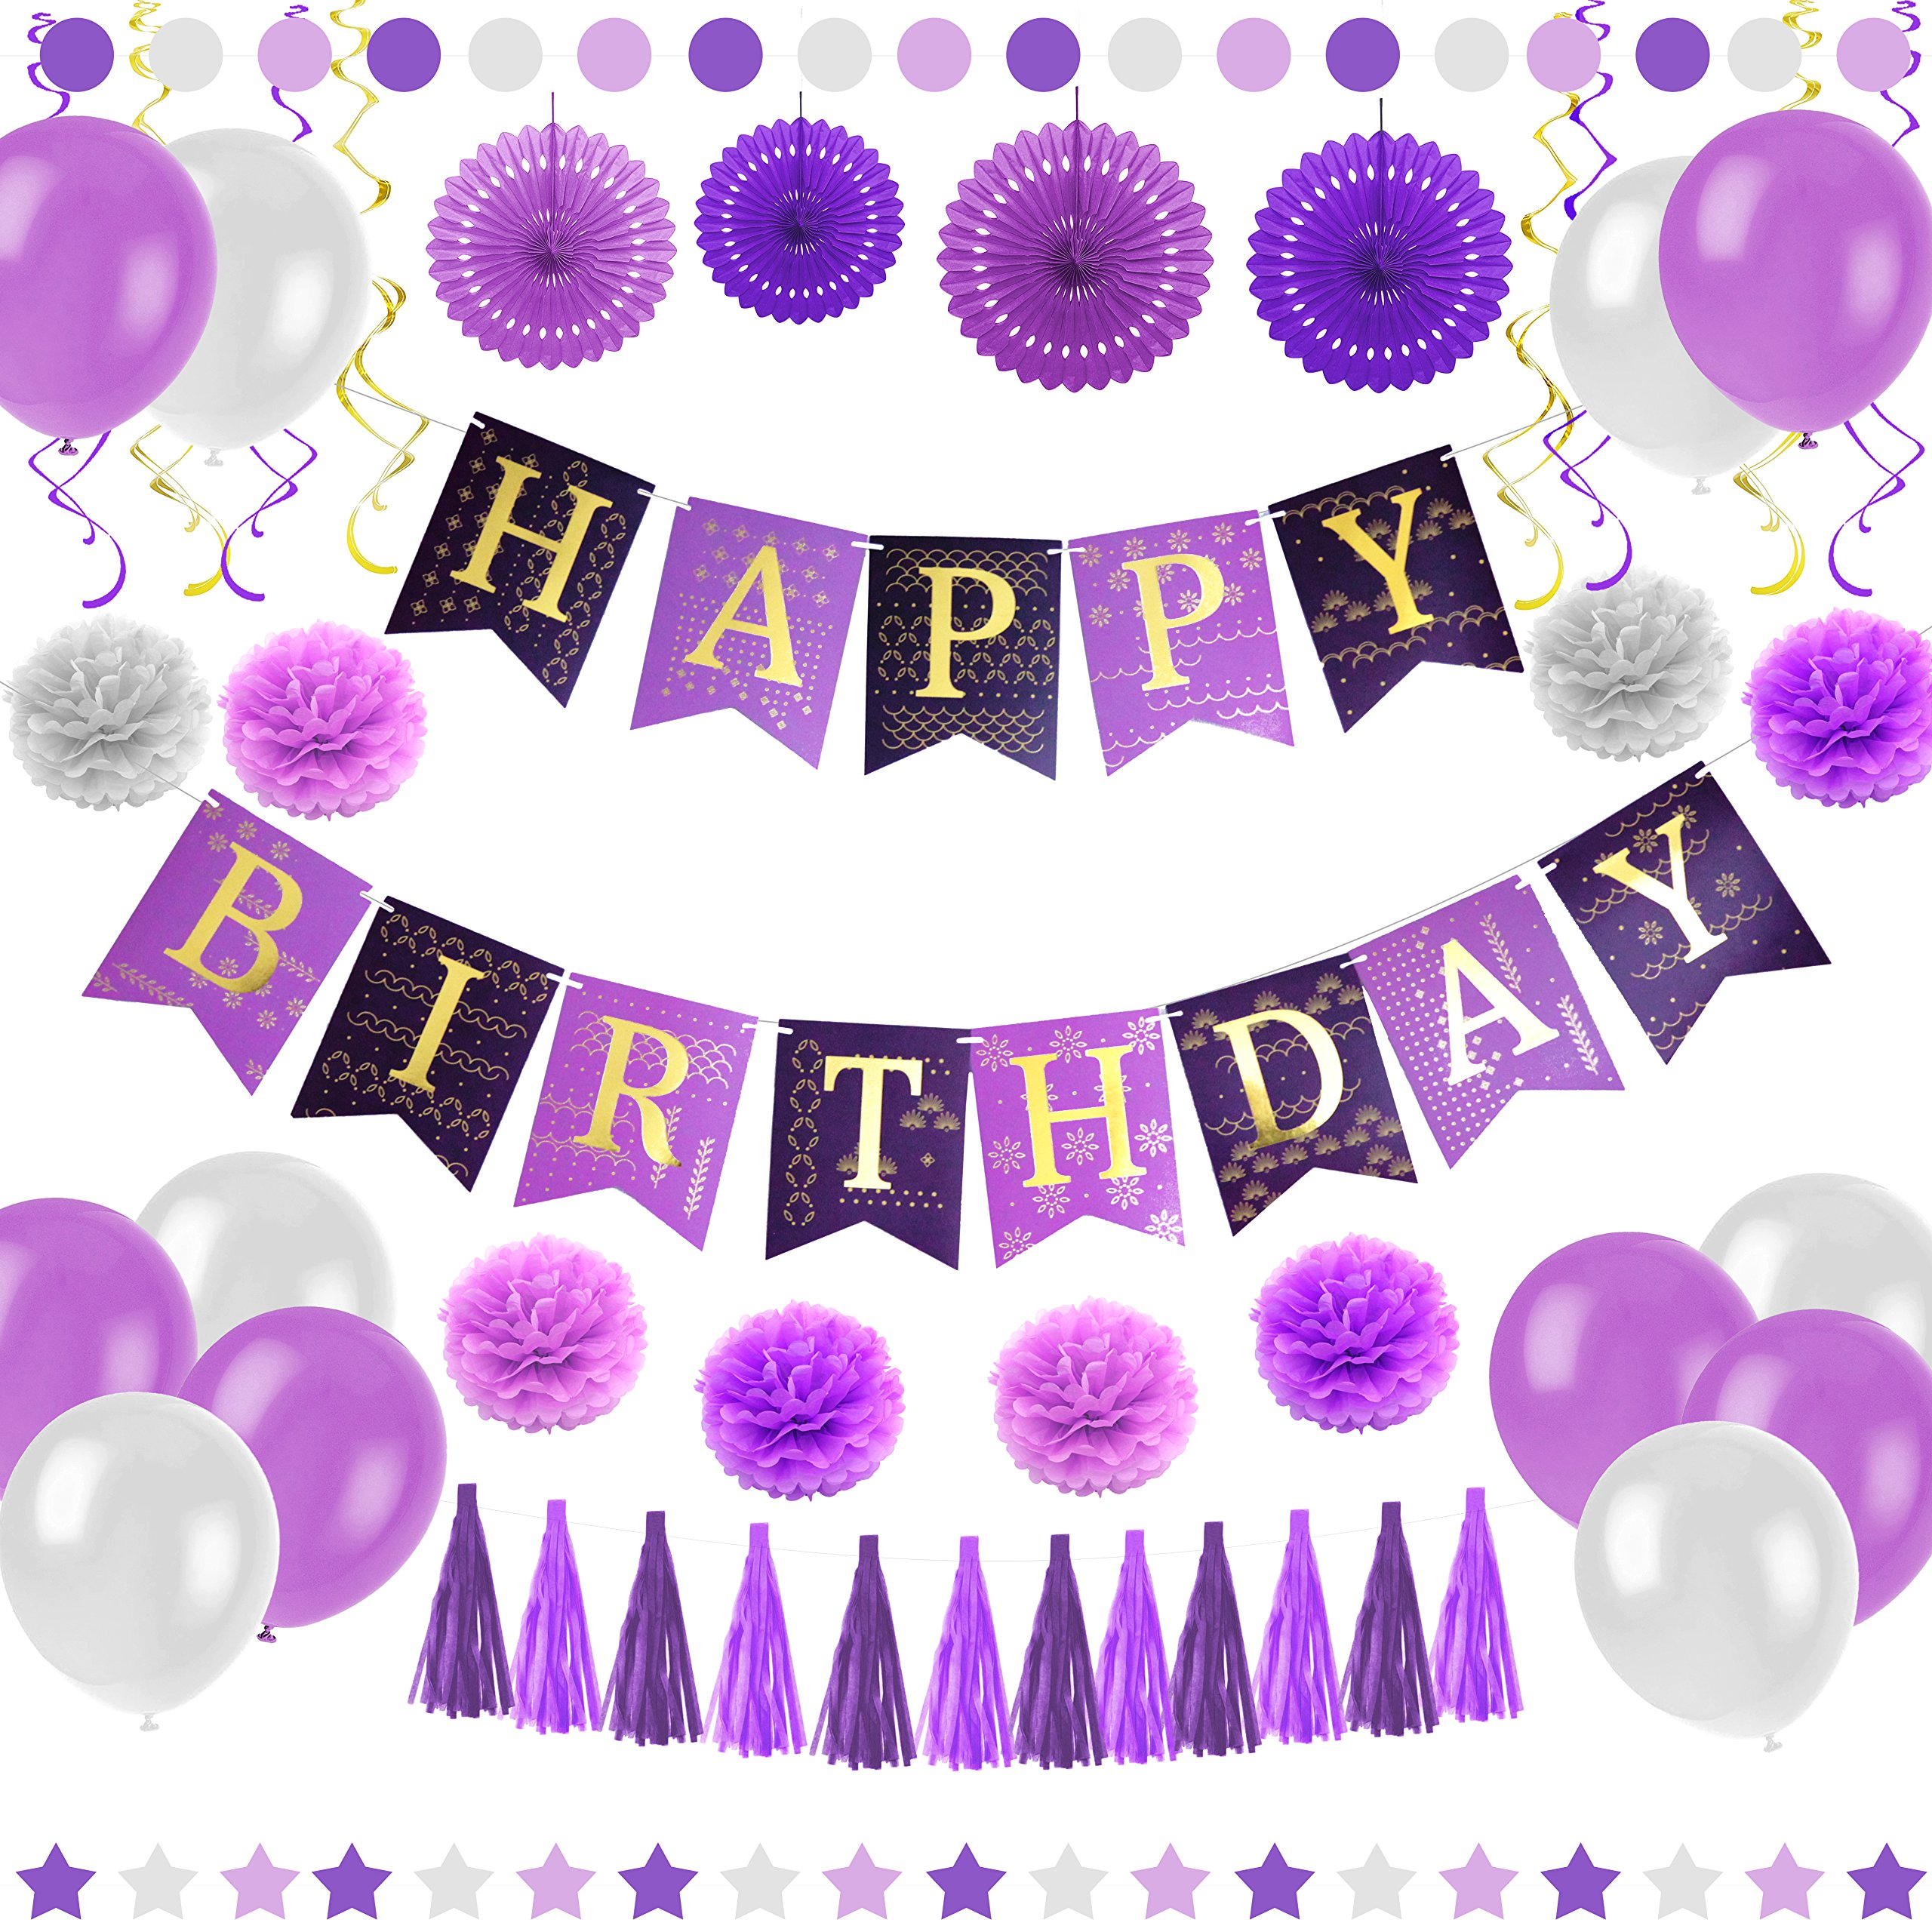 Purple Happy Birthday Party Decorations - Supplies Set for Adult Women & Men - Boy & Girl Kids - Includes Hanging Wall Bunting Flag Banner with Gold Letters, Pom Poms, Paper Fans, Garlands, Baloons by Enfy